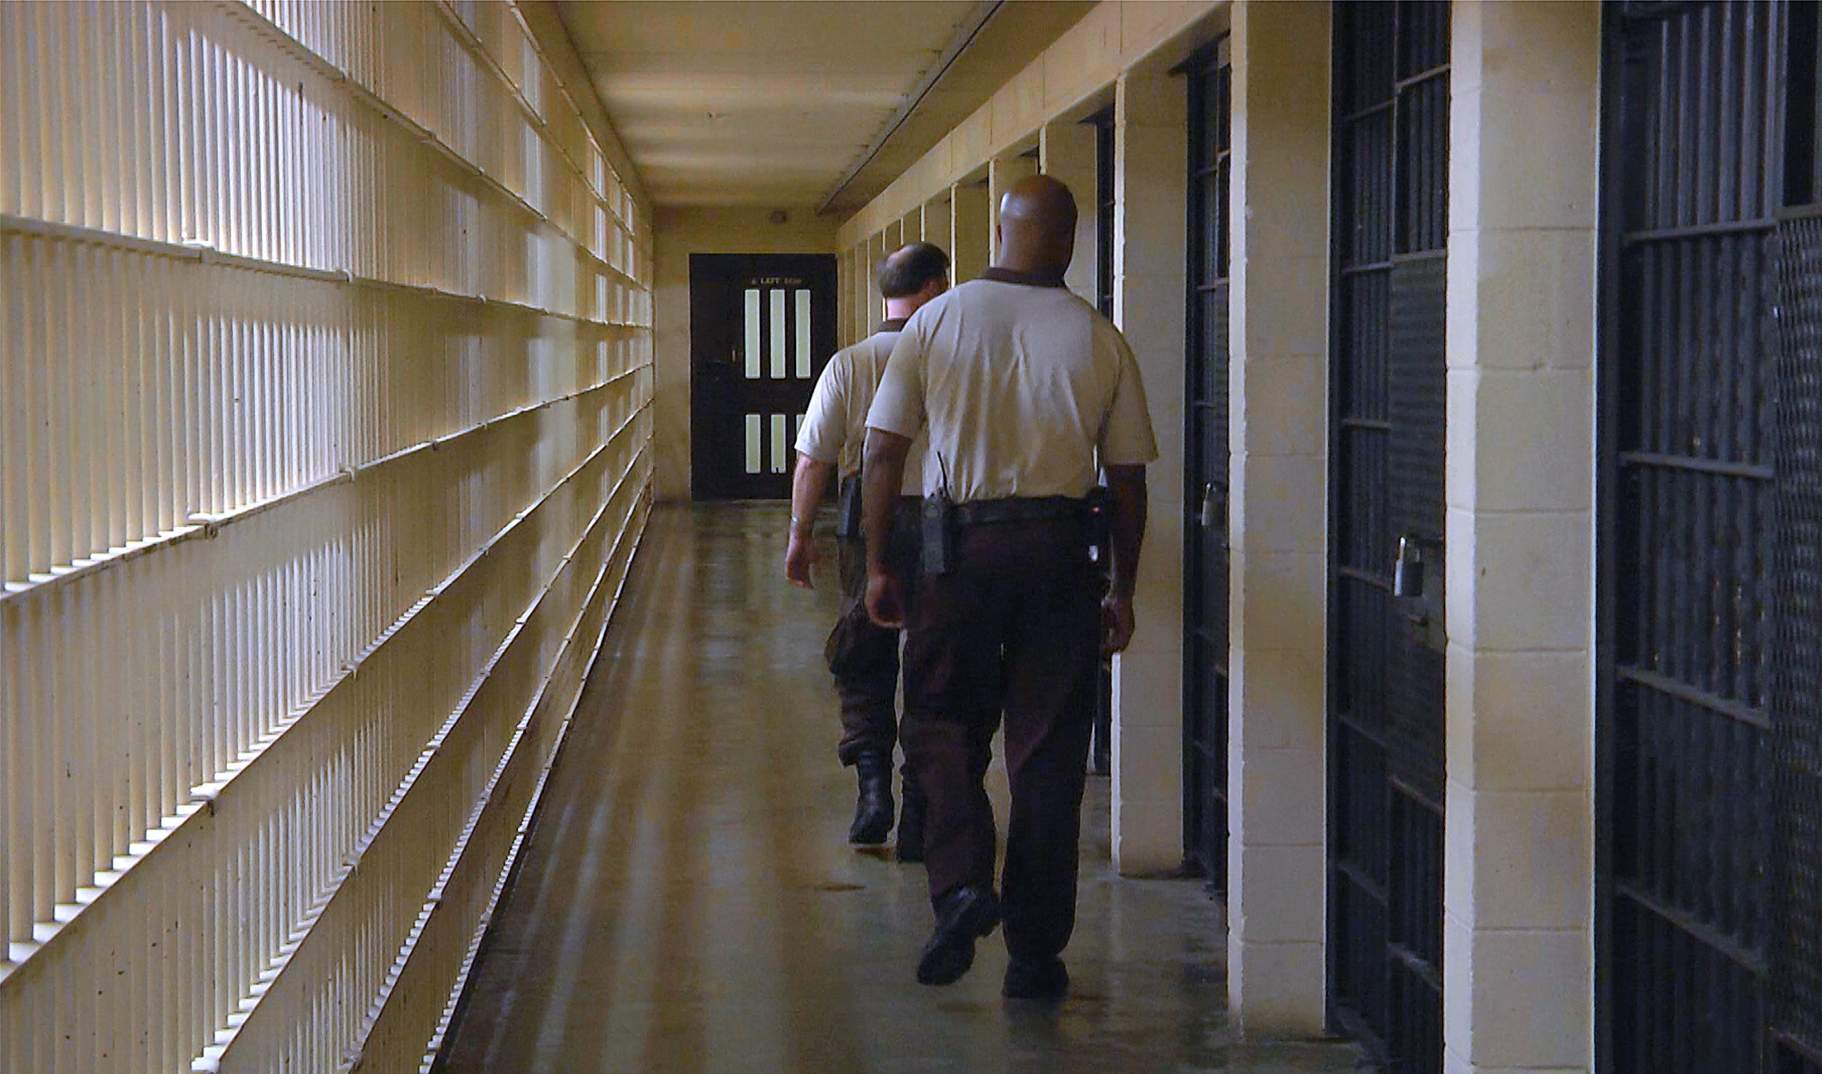 Video tour of Florida's death row shows how inmates live as